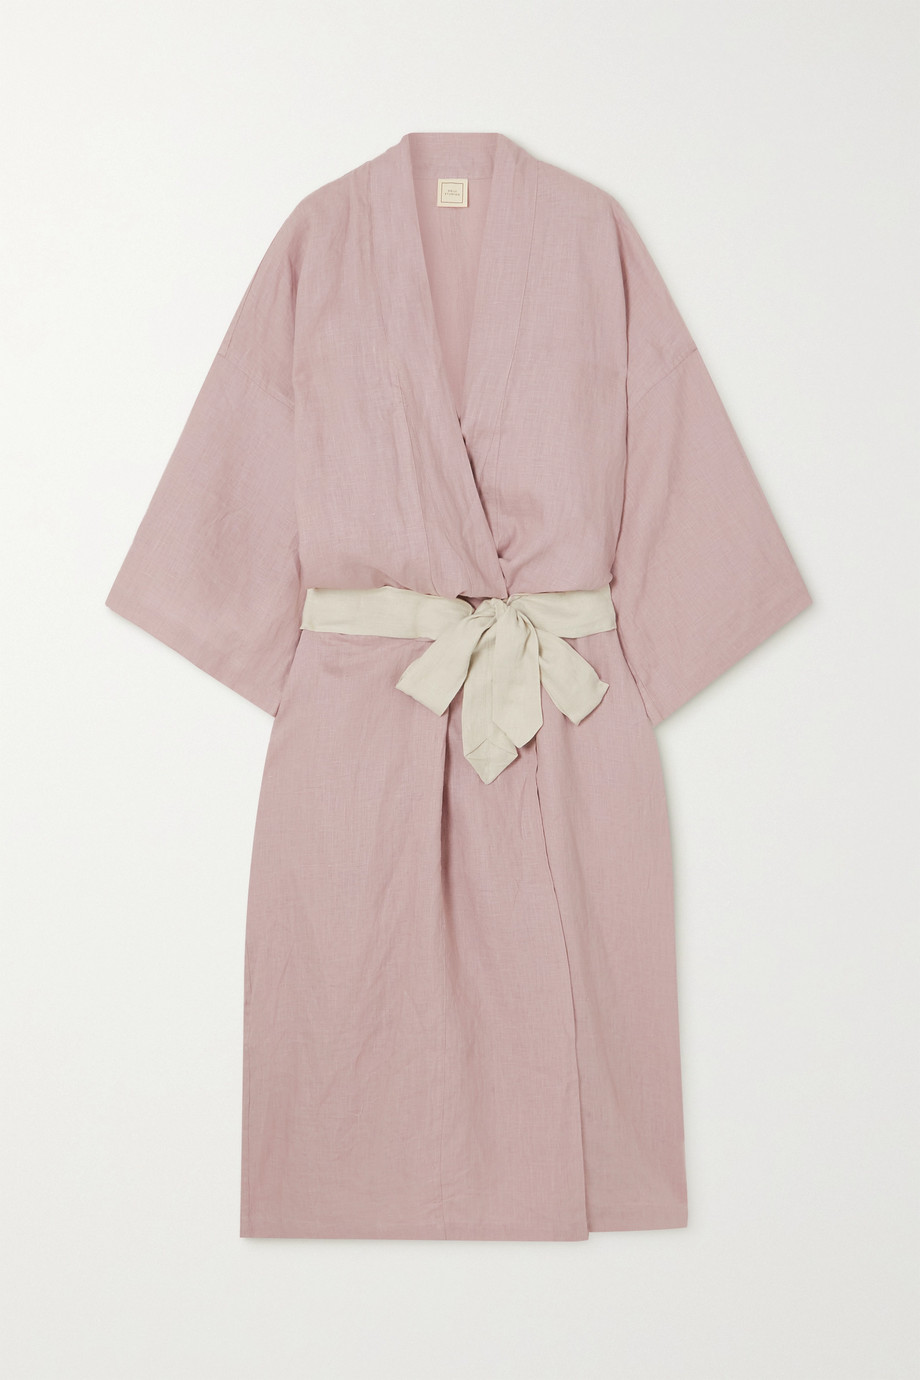 DEIJI STUDIOS Washed-linen robe